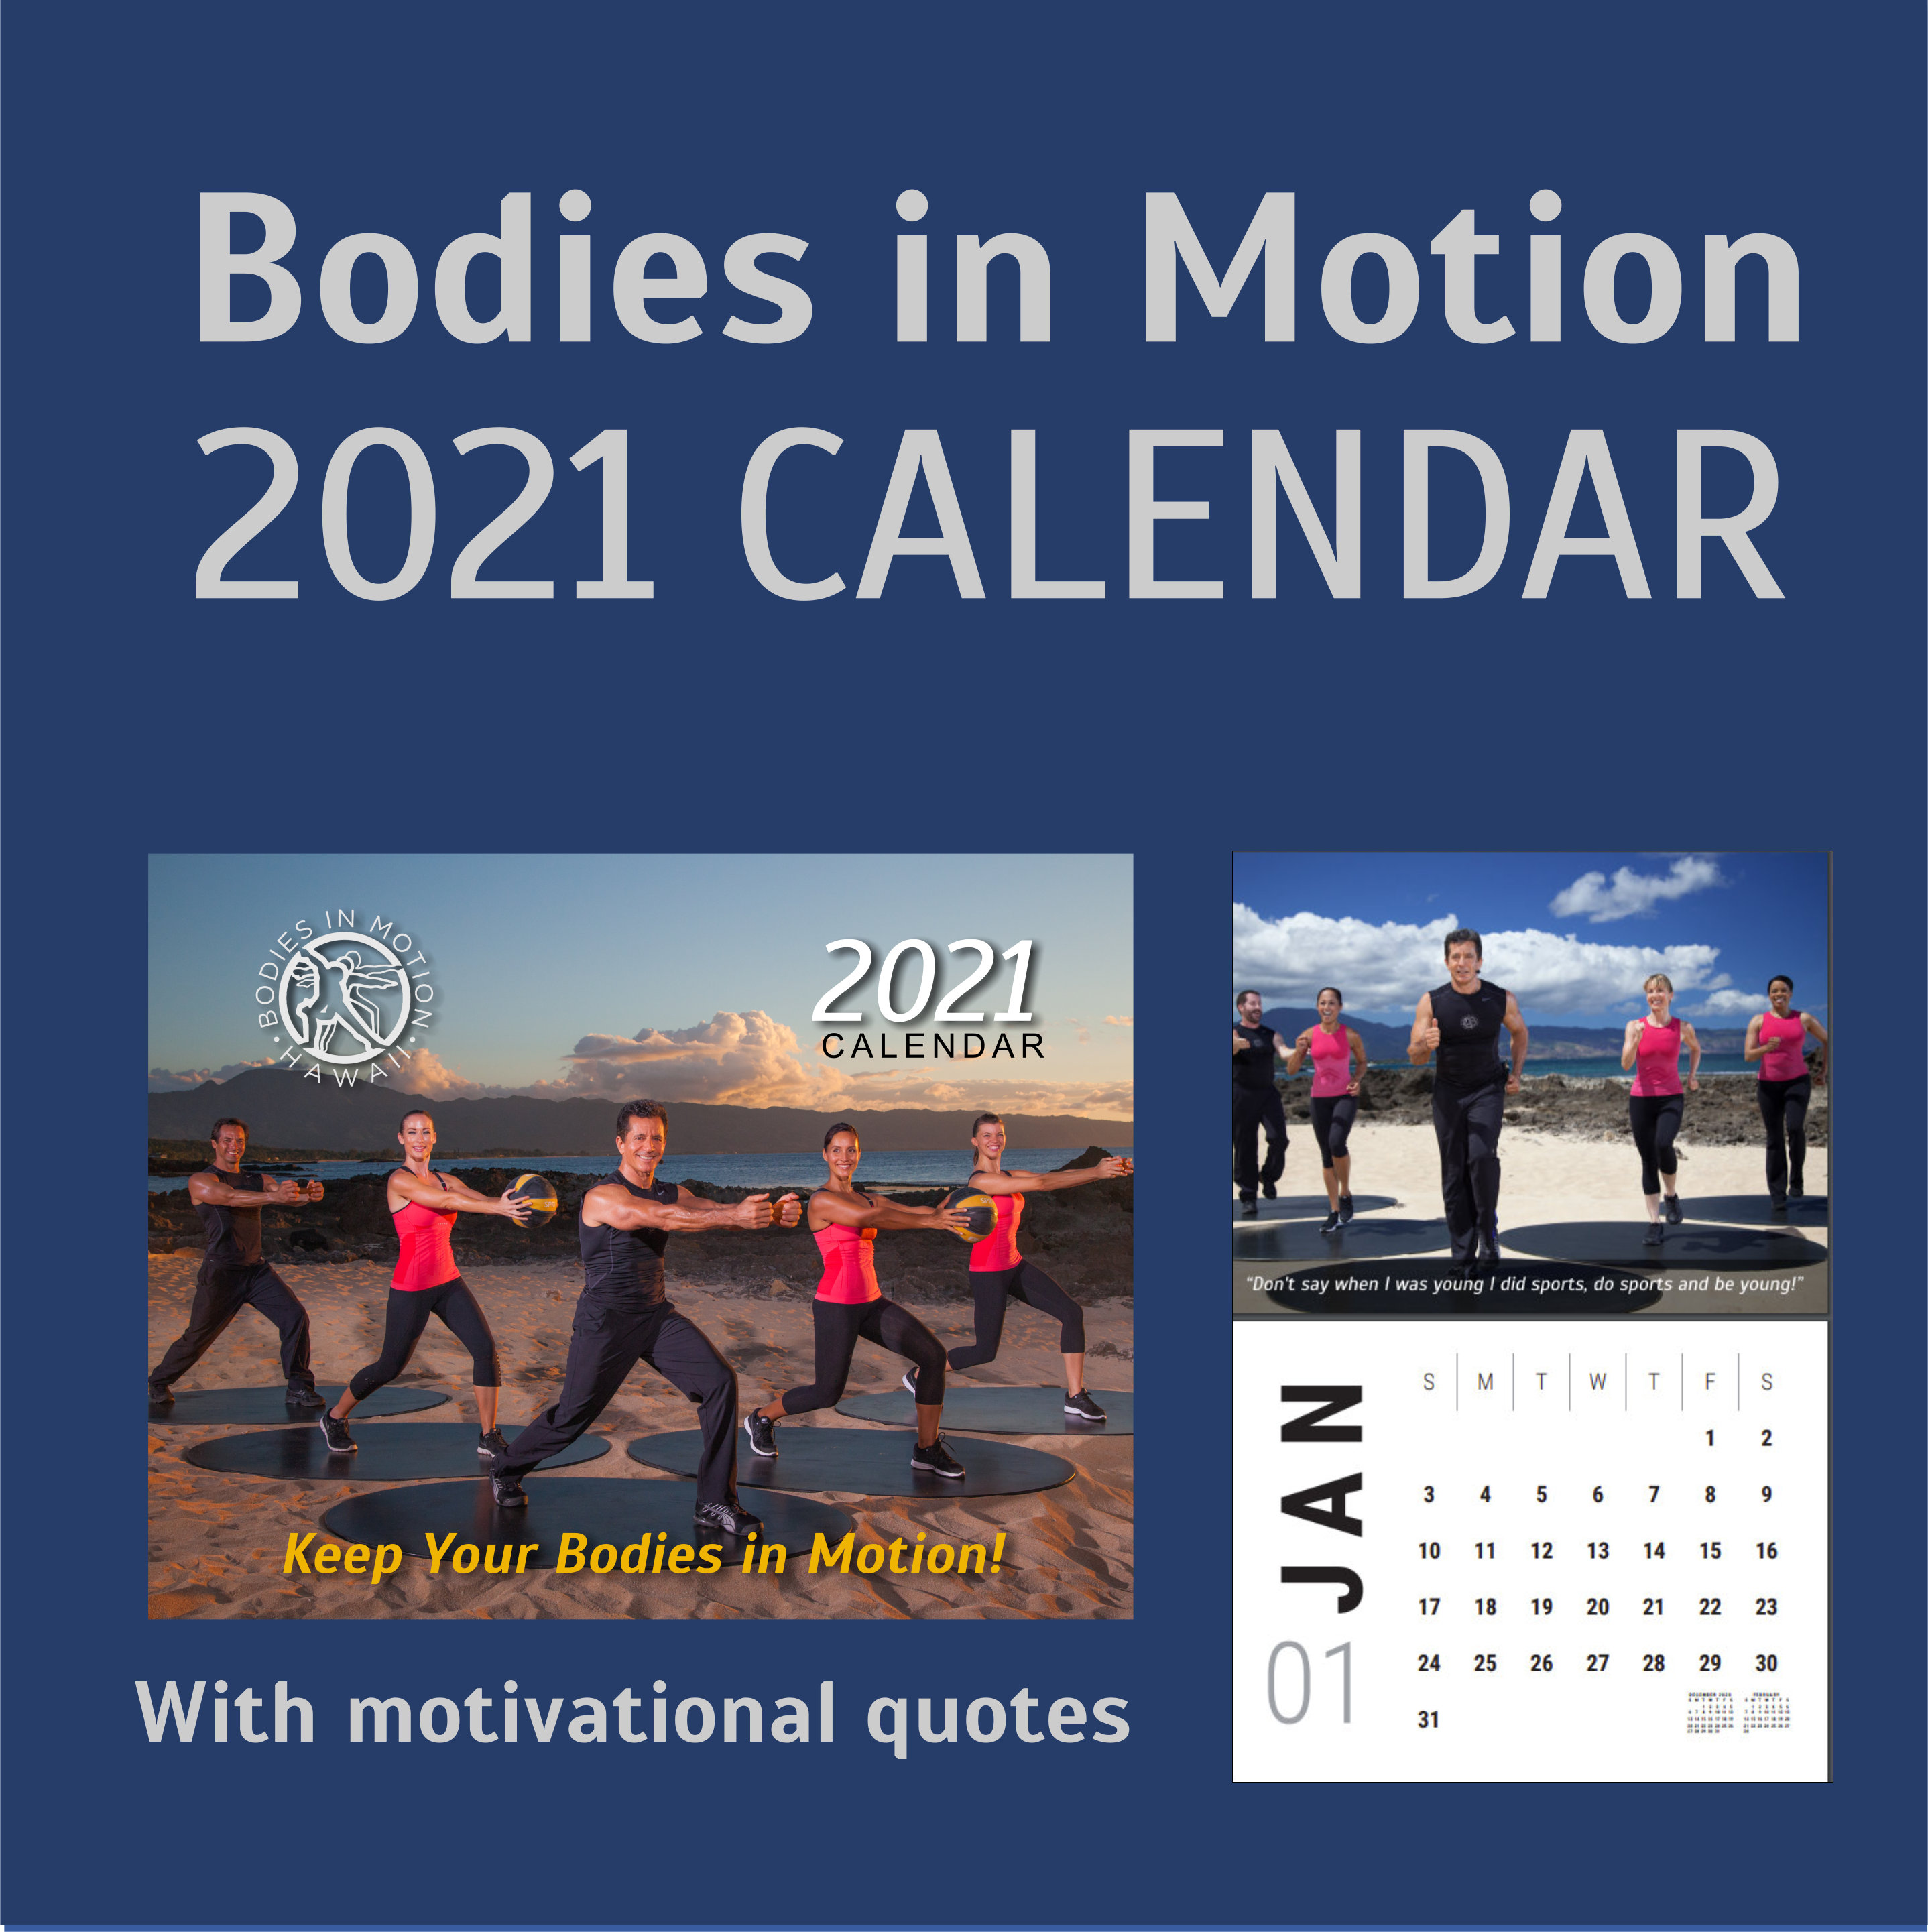 bodies in motion calendar 2021